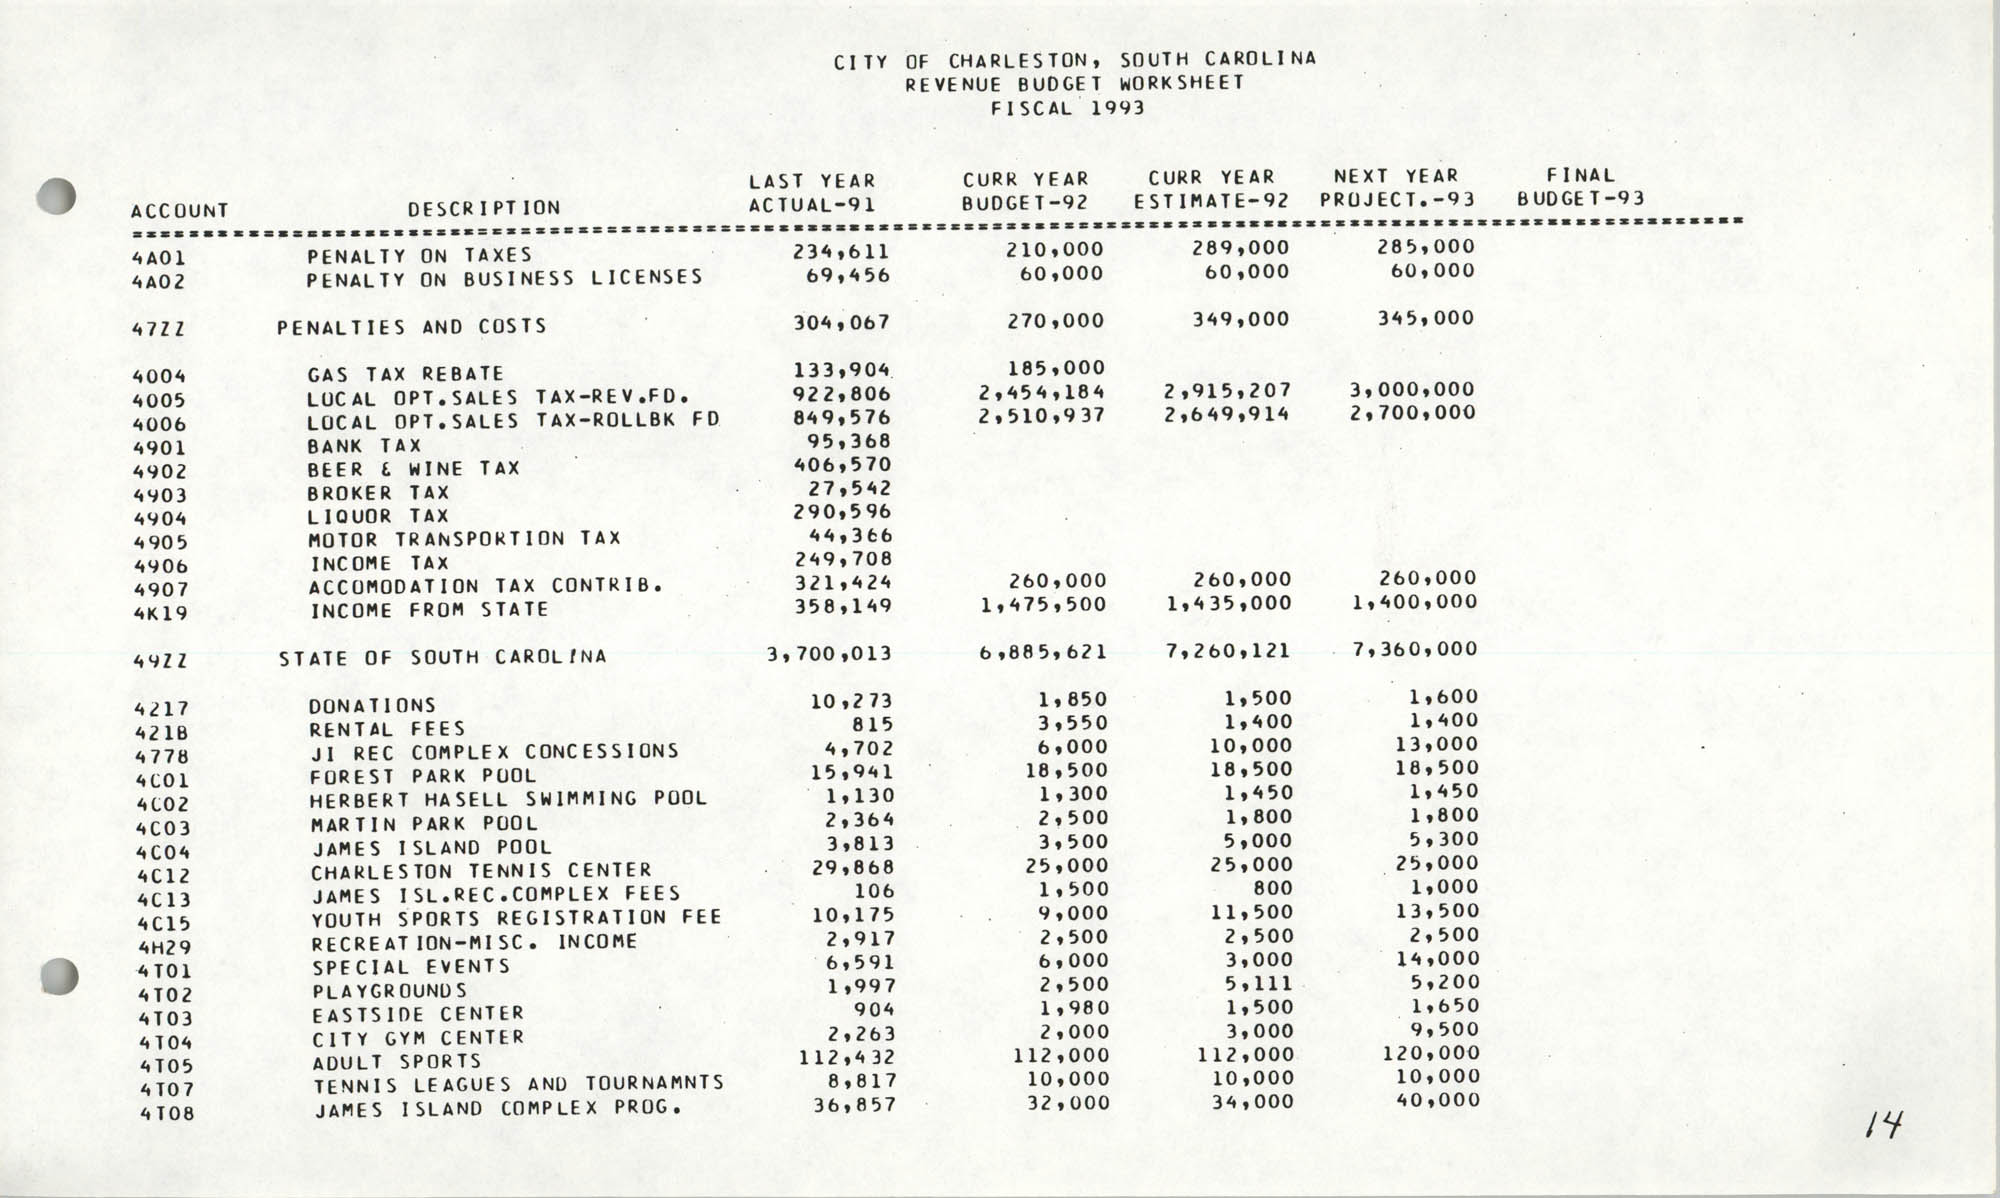 The City Council of Charleston, South Carolina, 1993 Budget, Page 14